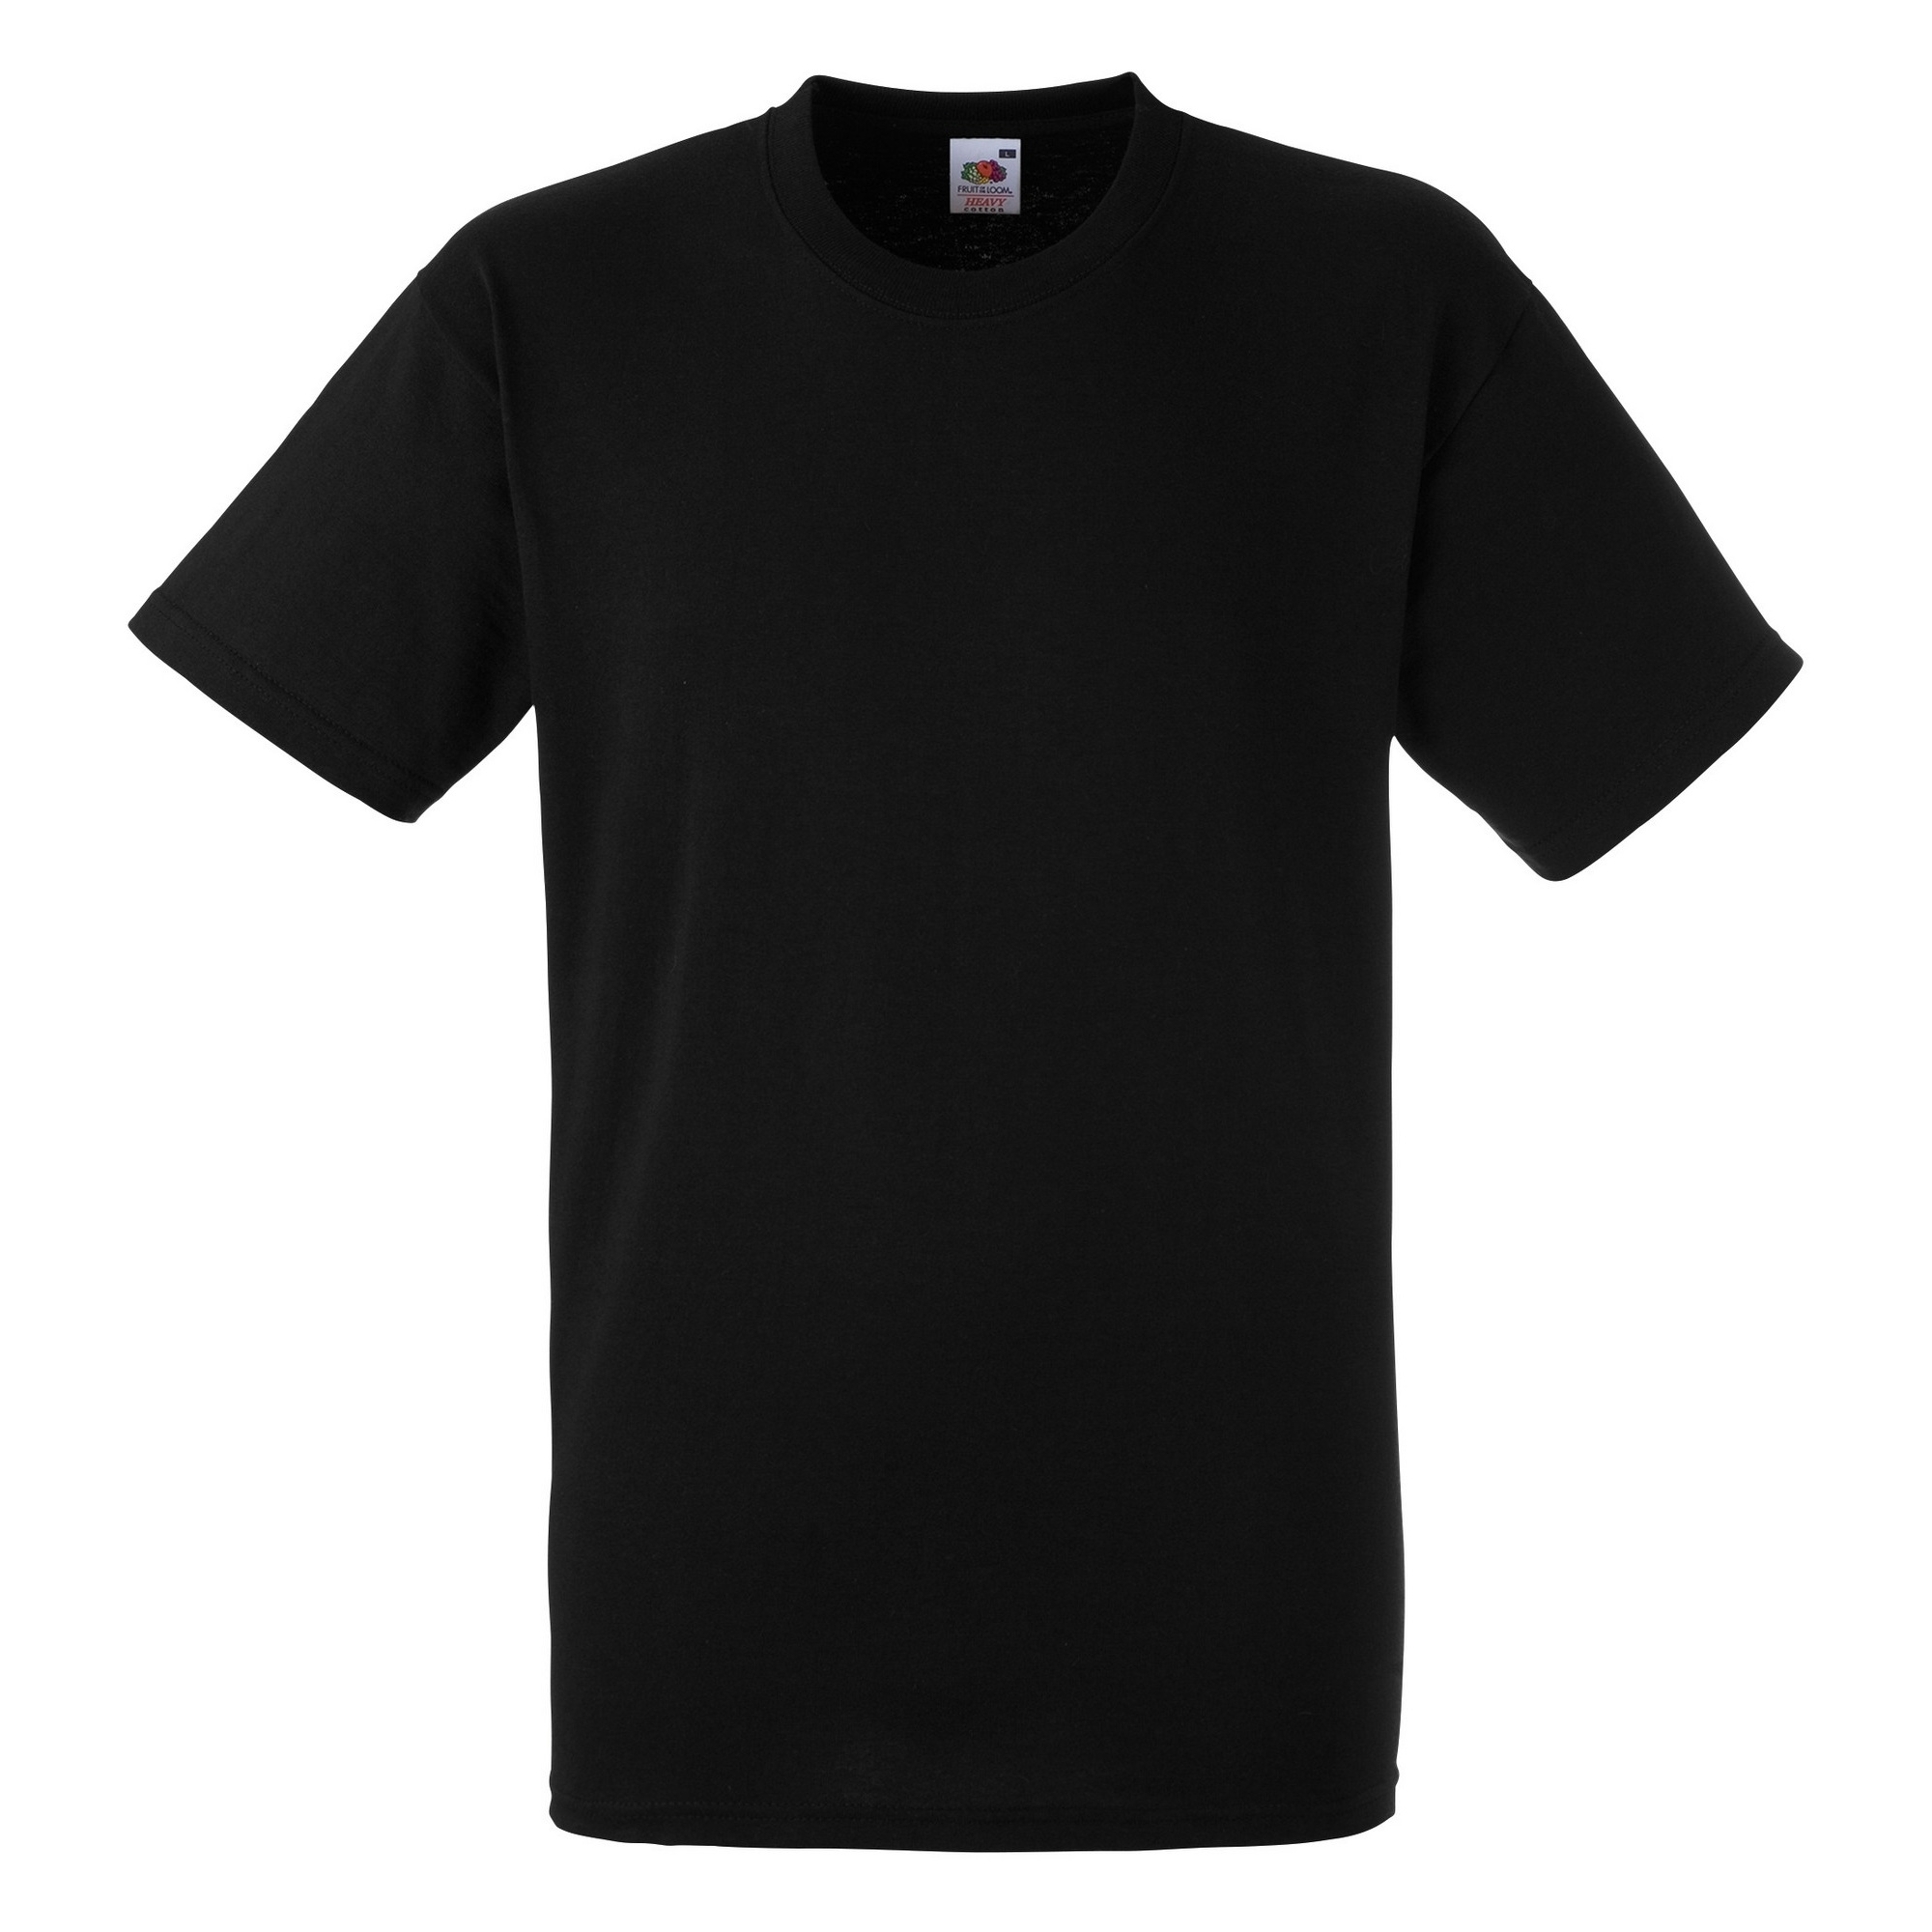 fruit of the loom mens heavy weight cotton short sleeve t shirt tee ebay. Black Bedroom Furniture Sets. Home Design Ideas